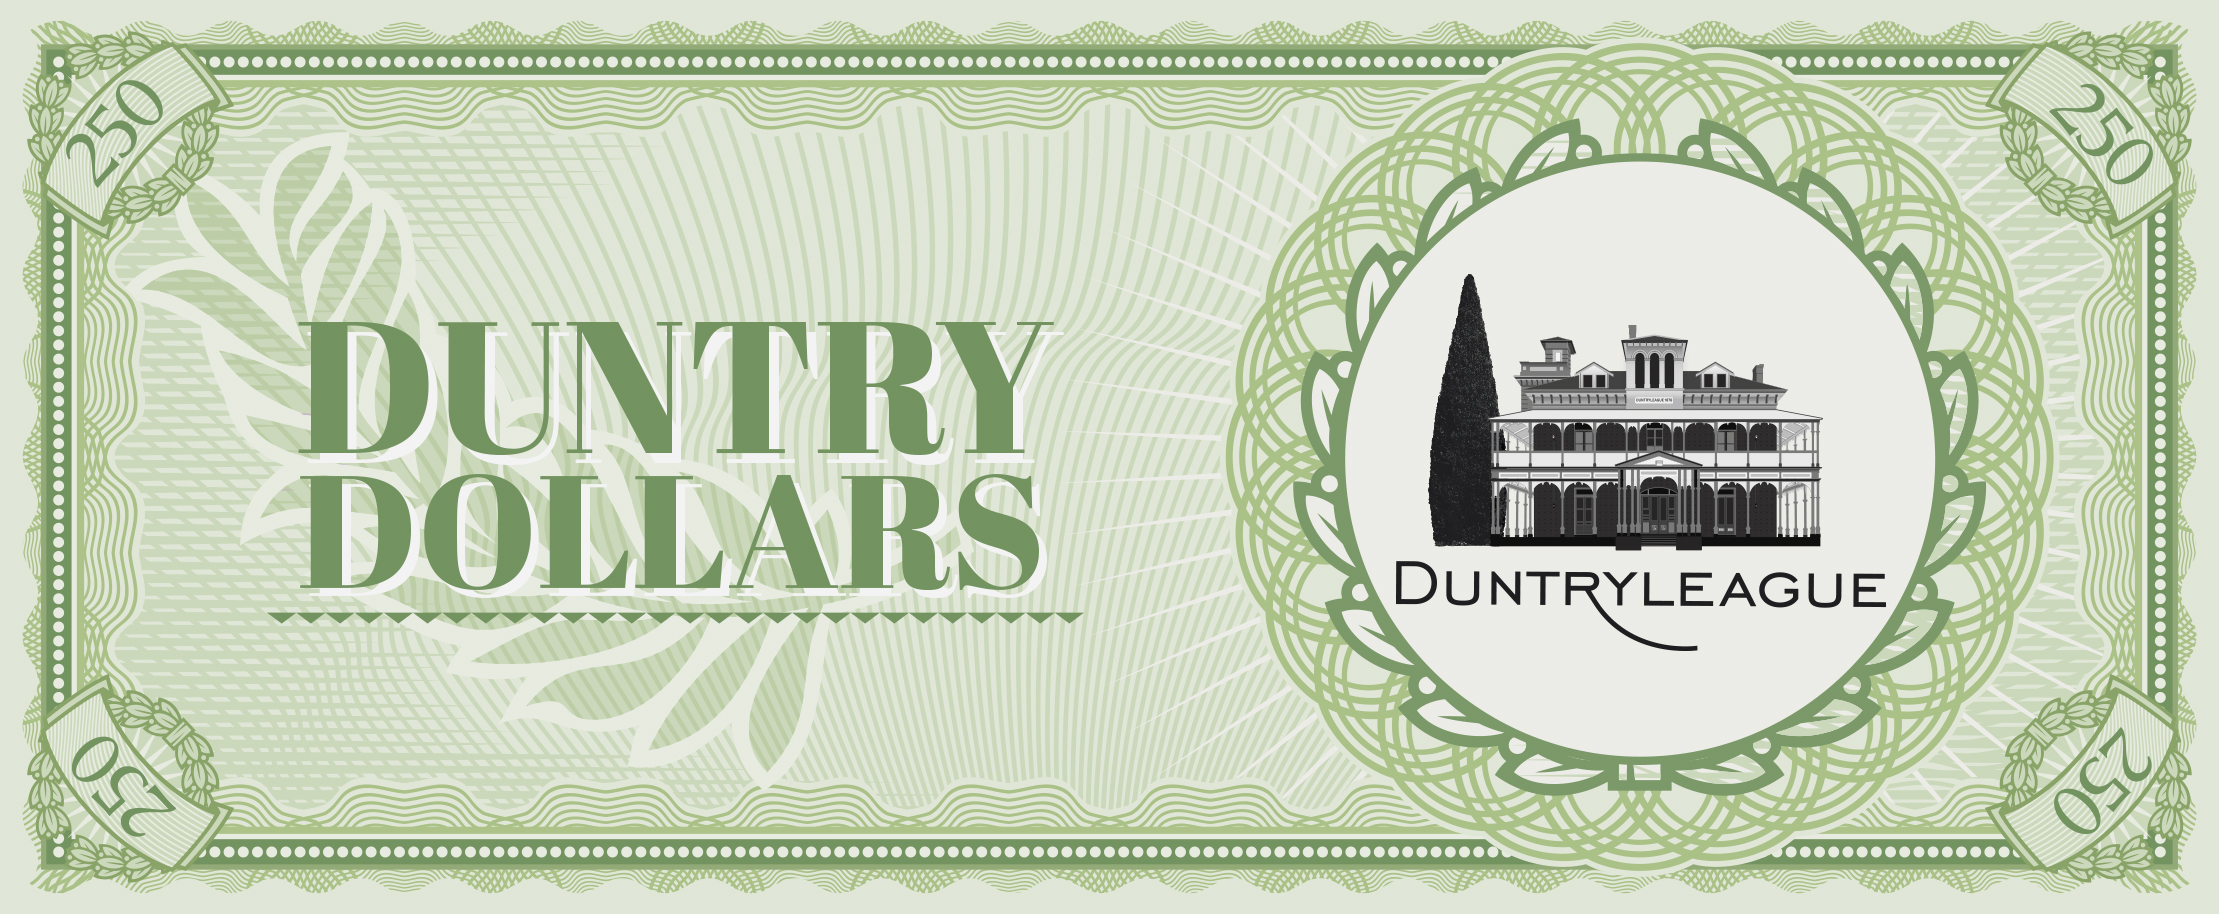 friday night duntry dollars